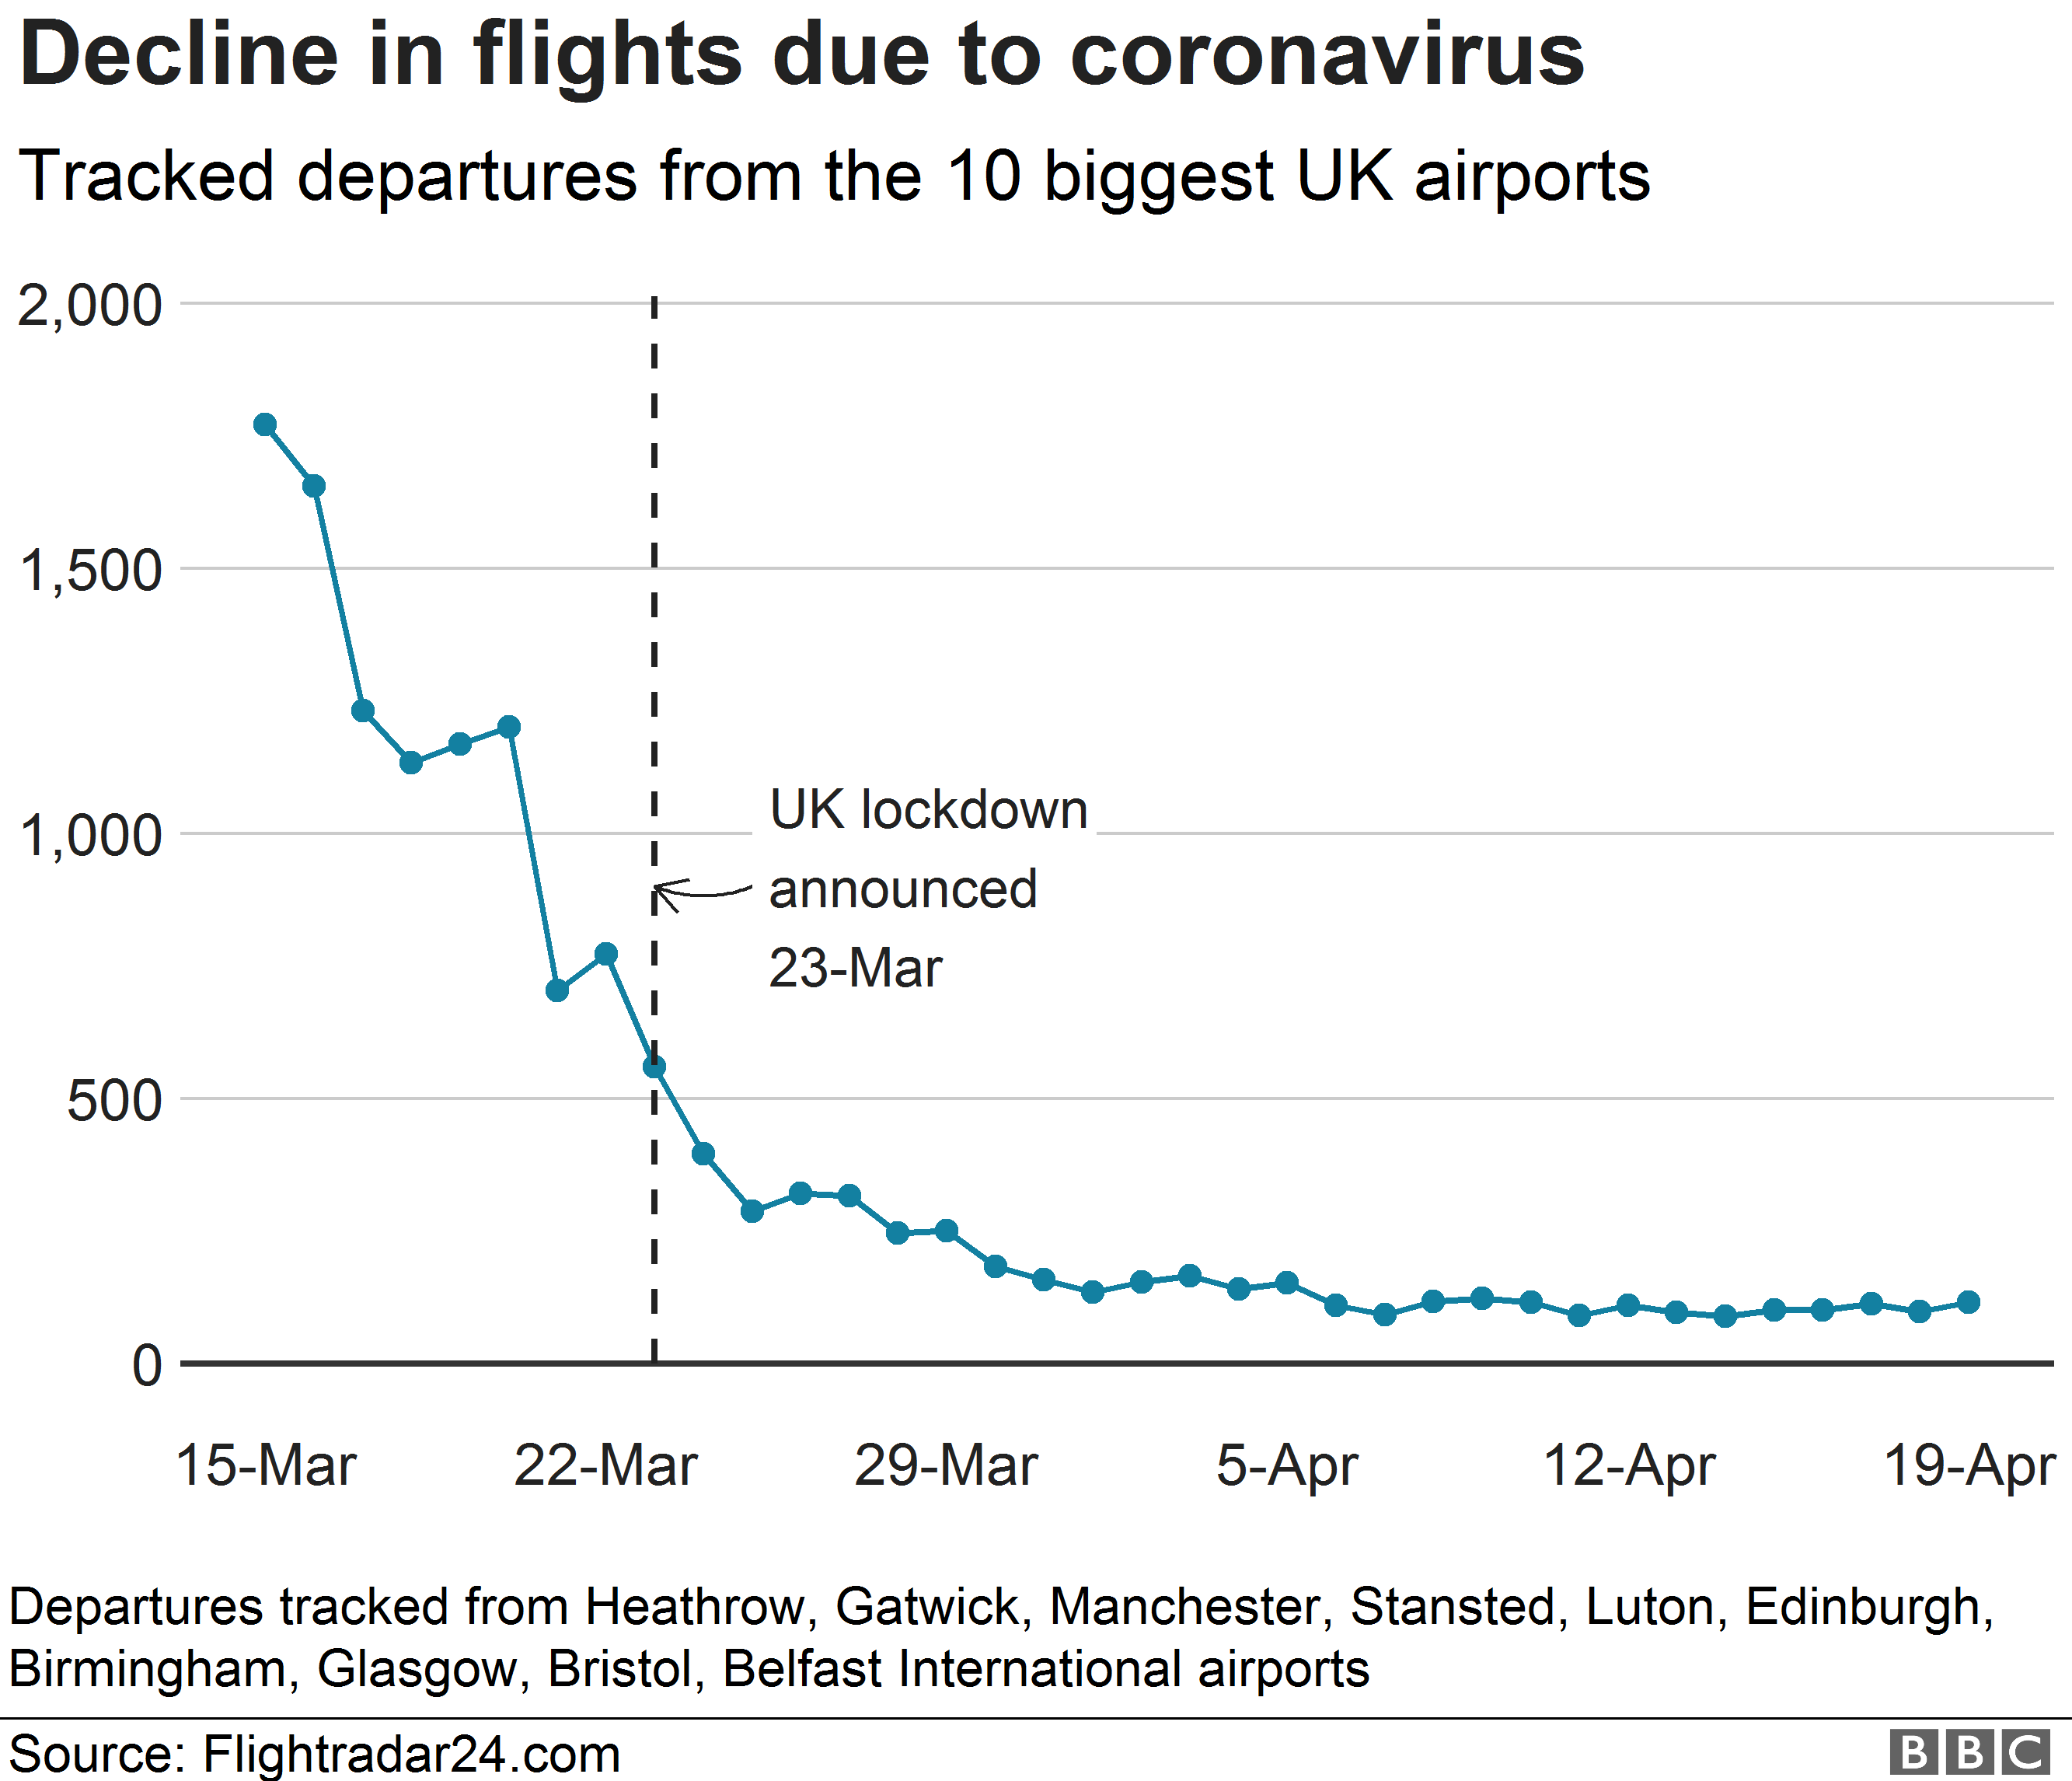 Chart showing the decline in flights tracked from the UK's biggest airports